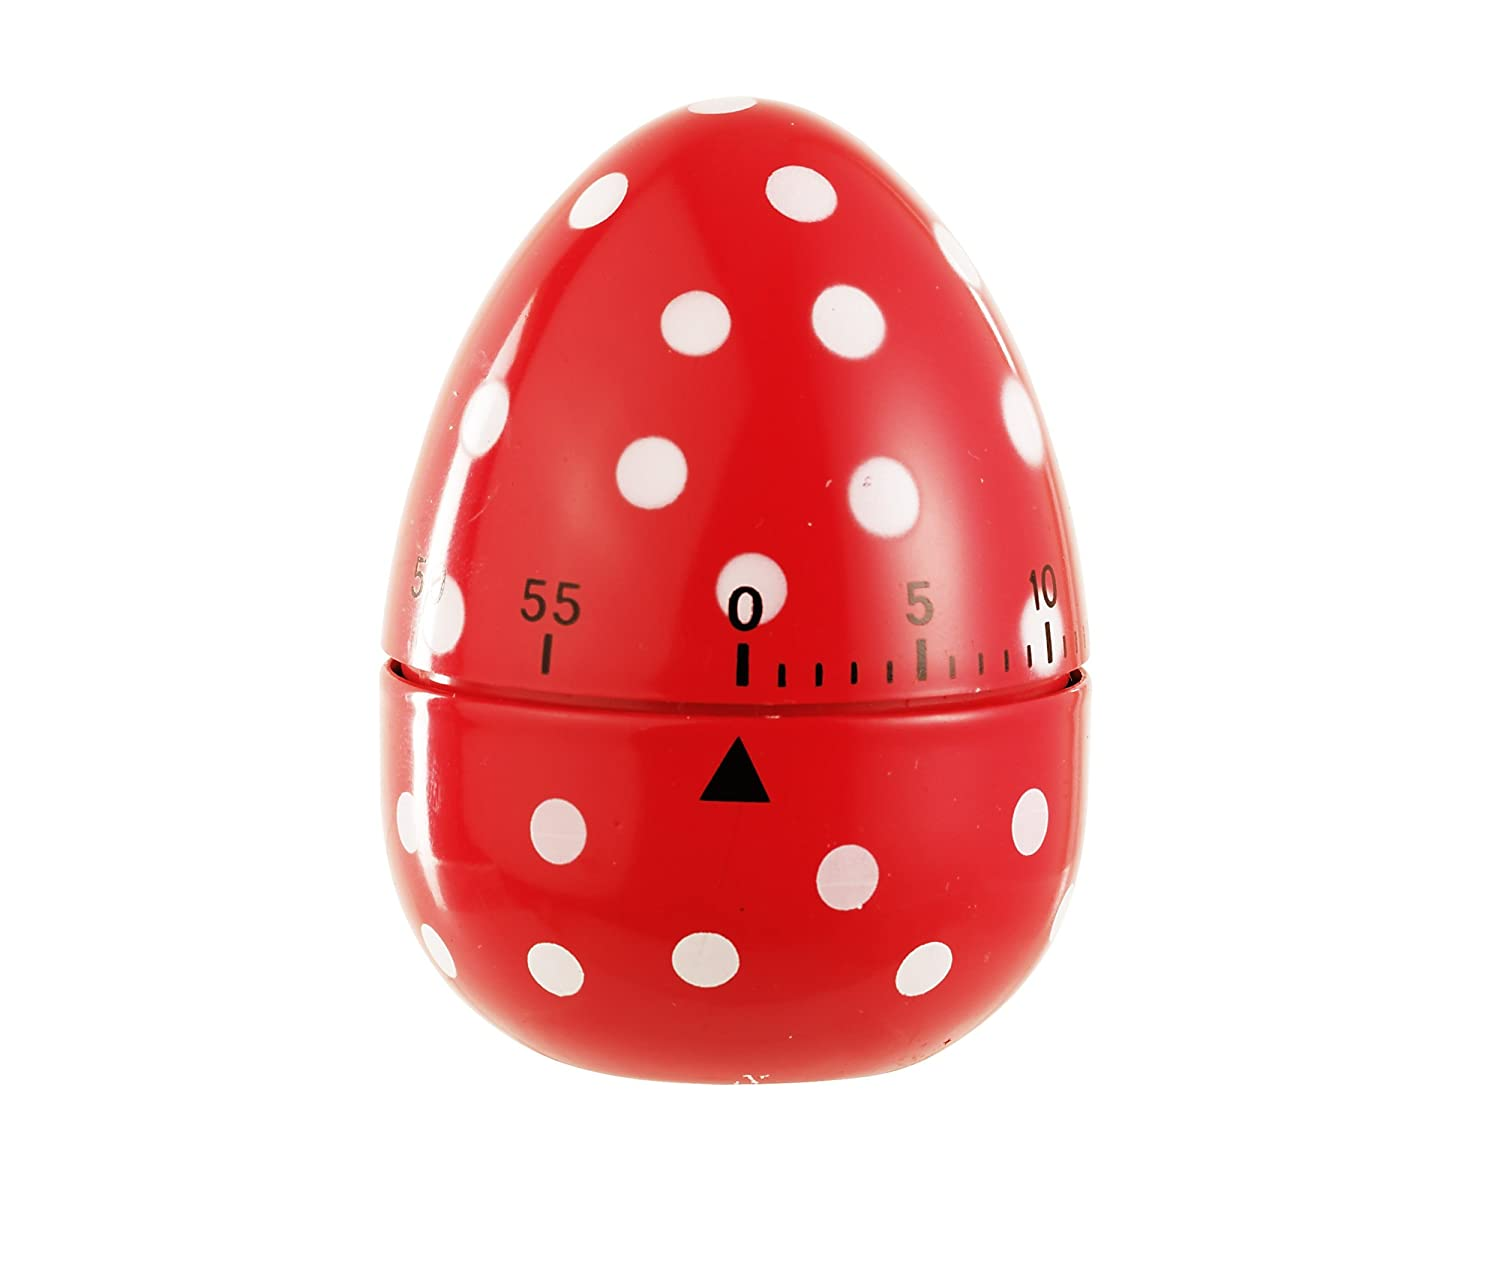 Ikea Ordning Kitchen Timer Eddingtons 60 Minute Egg Timer Red Spotted Amazoncouk Kitchen